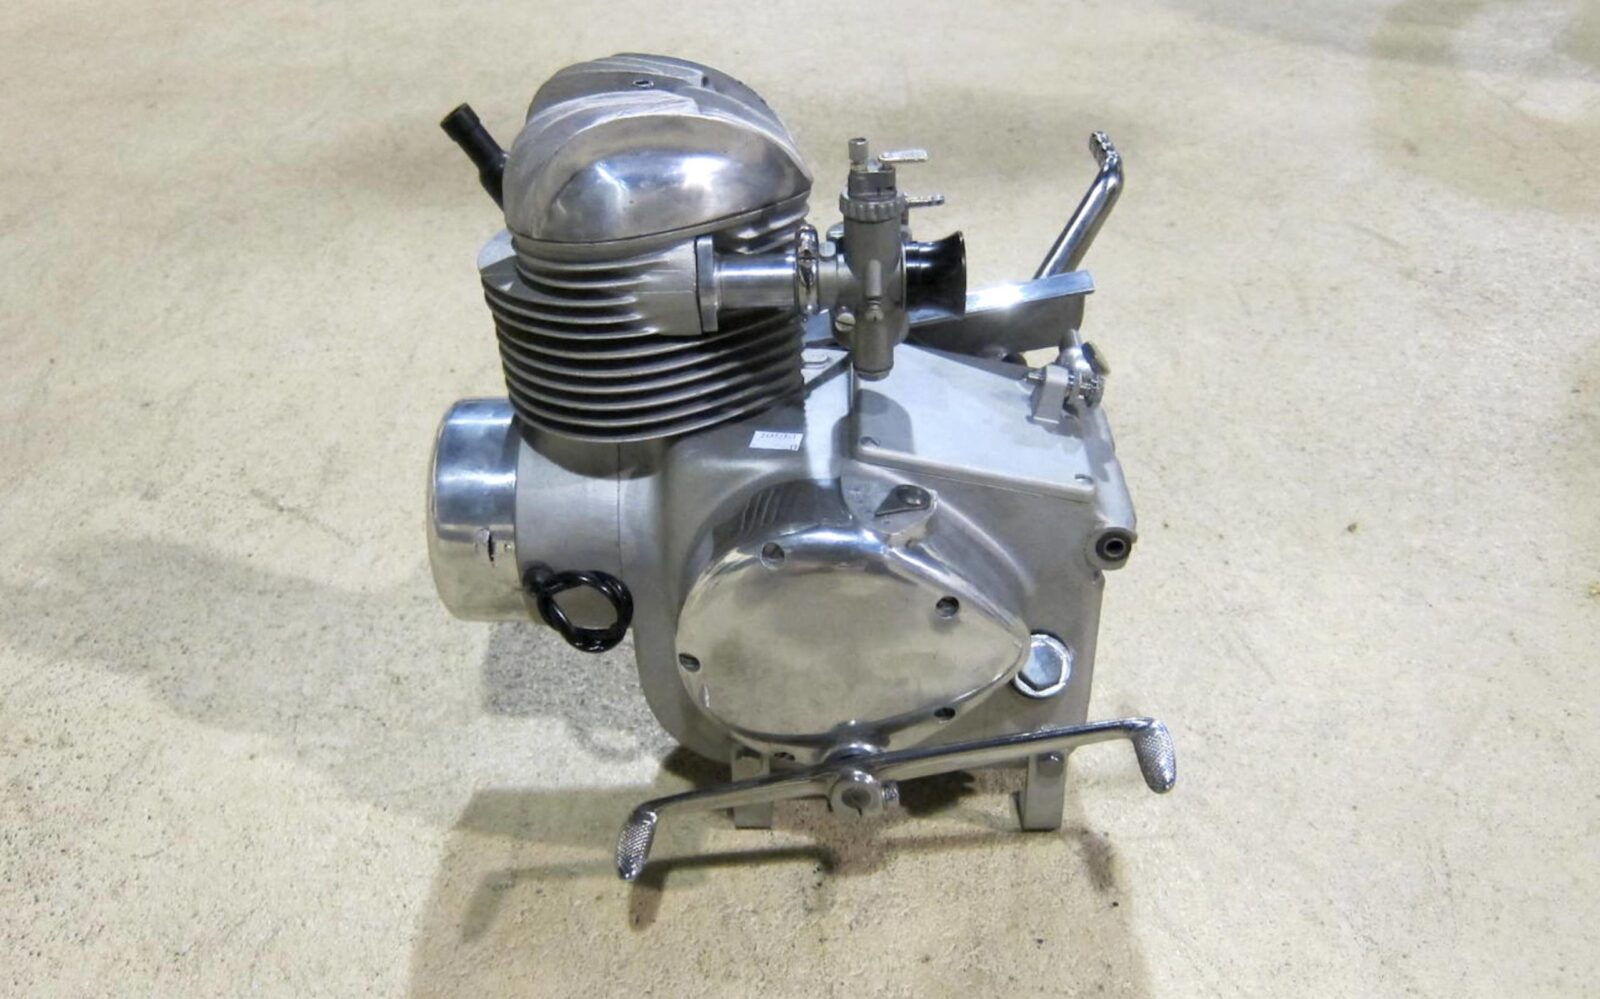 Mystery Motorcycle Engine